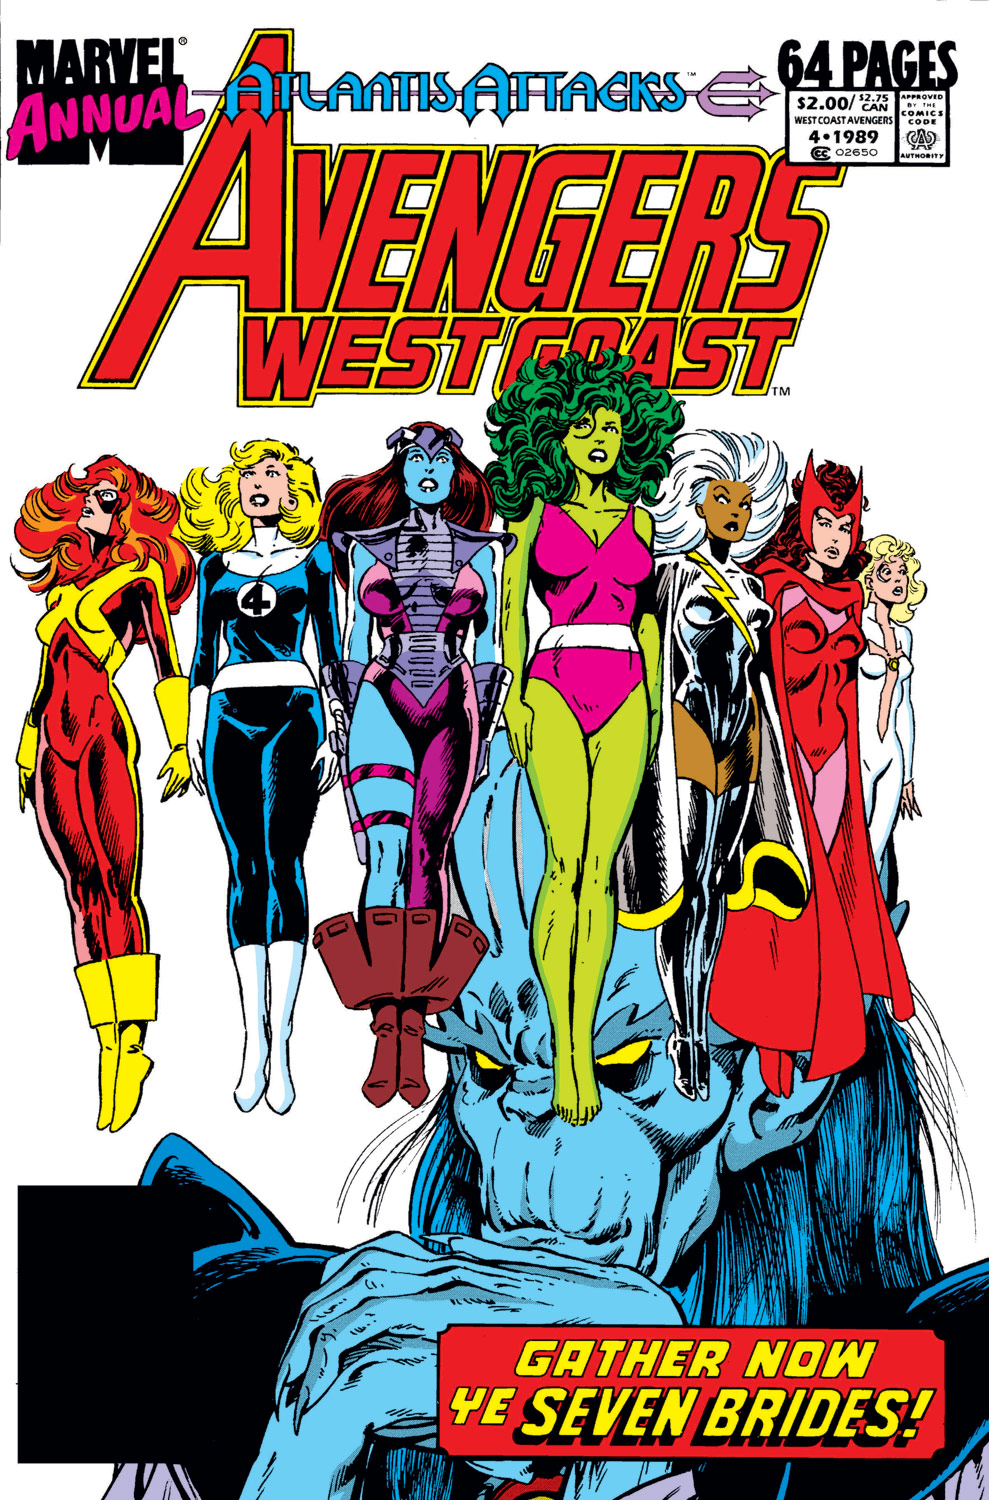 Avengers West Coast Annual (1986) #4